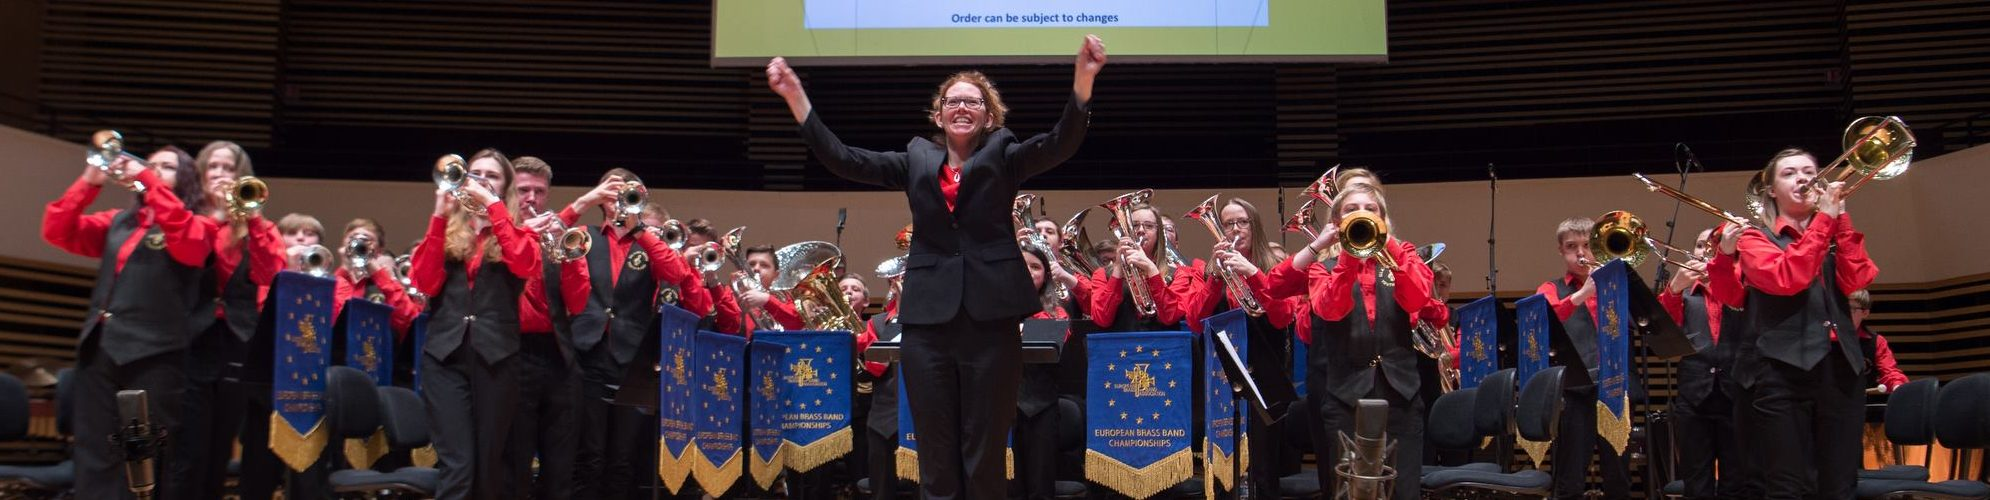 Samantha Harrison leads Elland Silver Youth Band at the European Championships